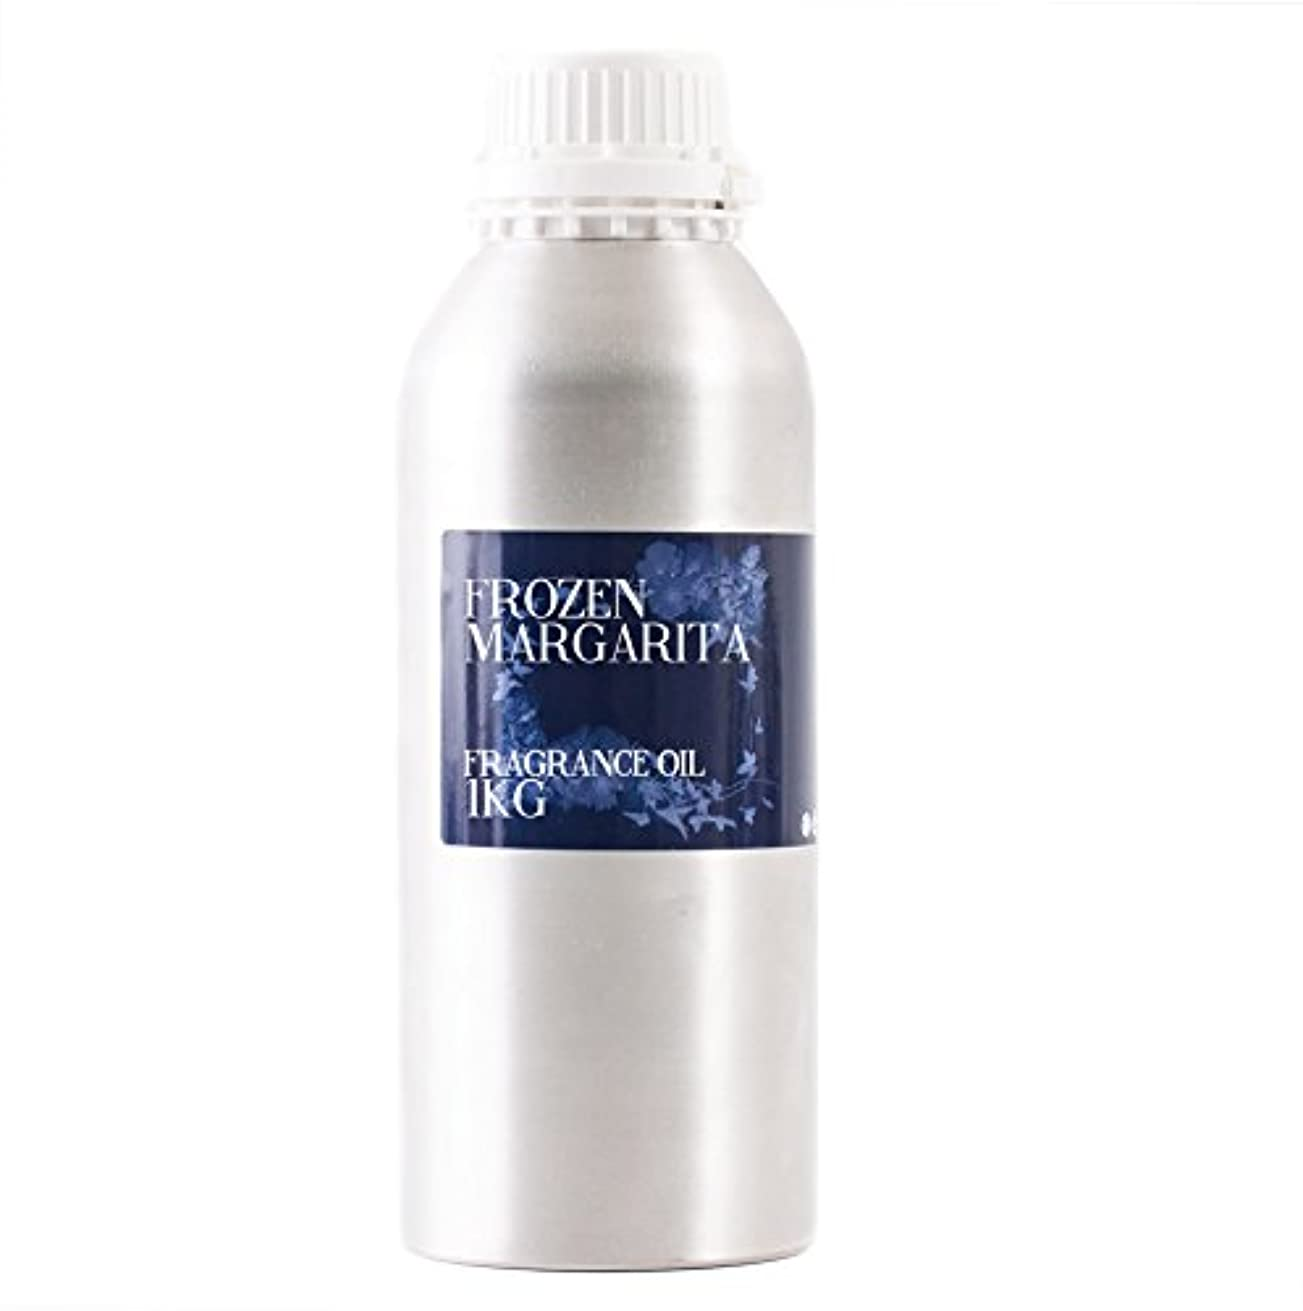 Mystic Moments | Frozen Margarita Fragrance Oil - 1Kg